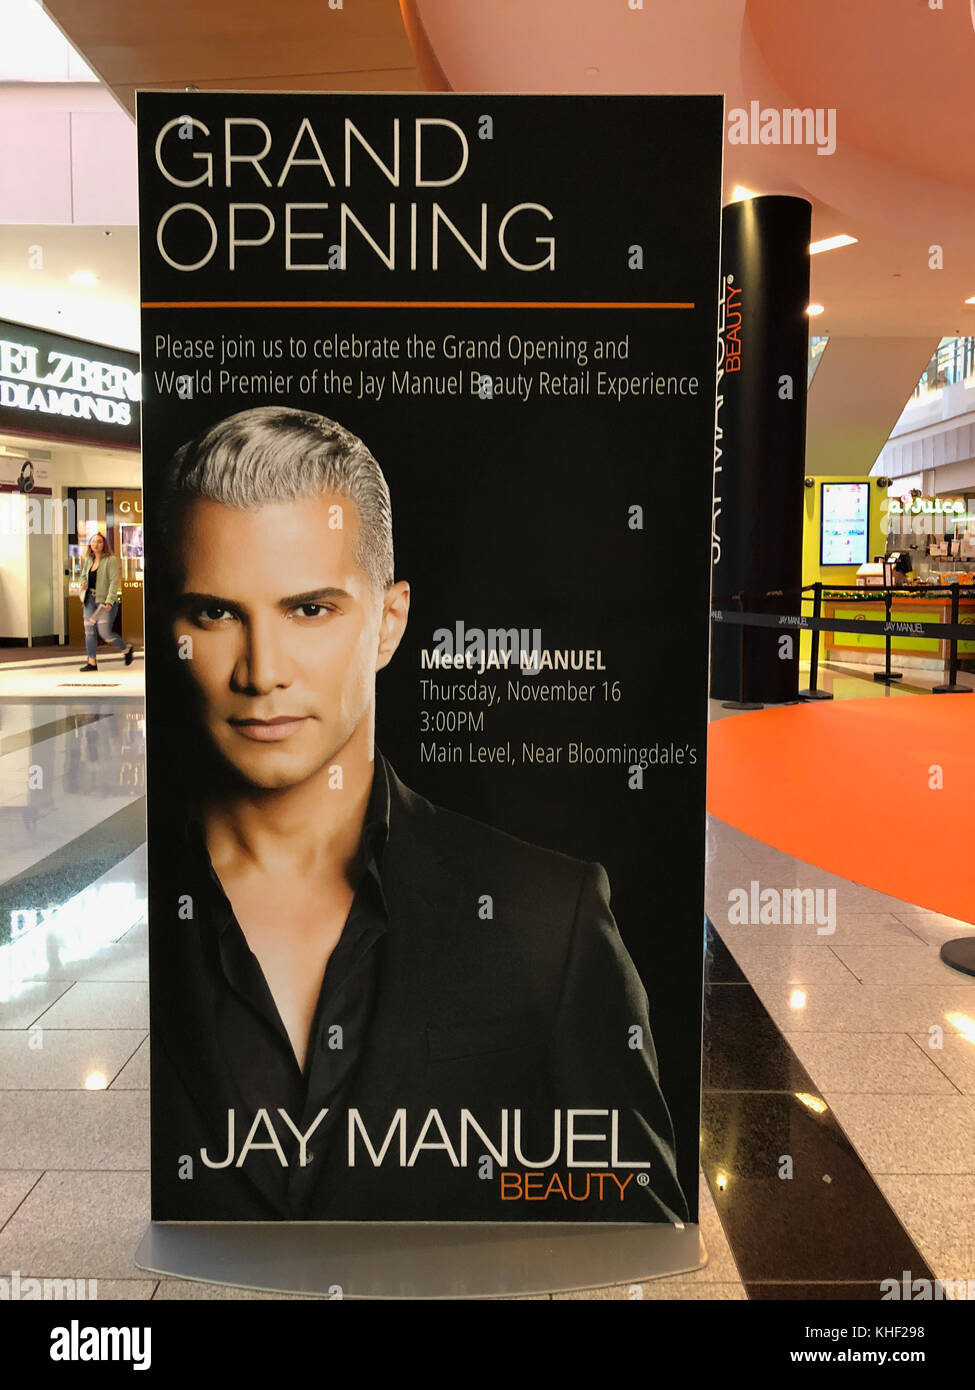 Garden City, New York, USA. 16th Nov, 2017. A large sign announces that Jay Manuel, makeup artist and stylist, is - Stock Image